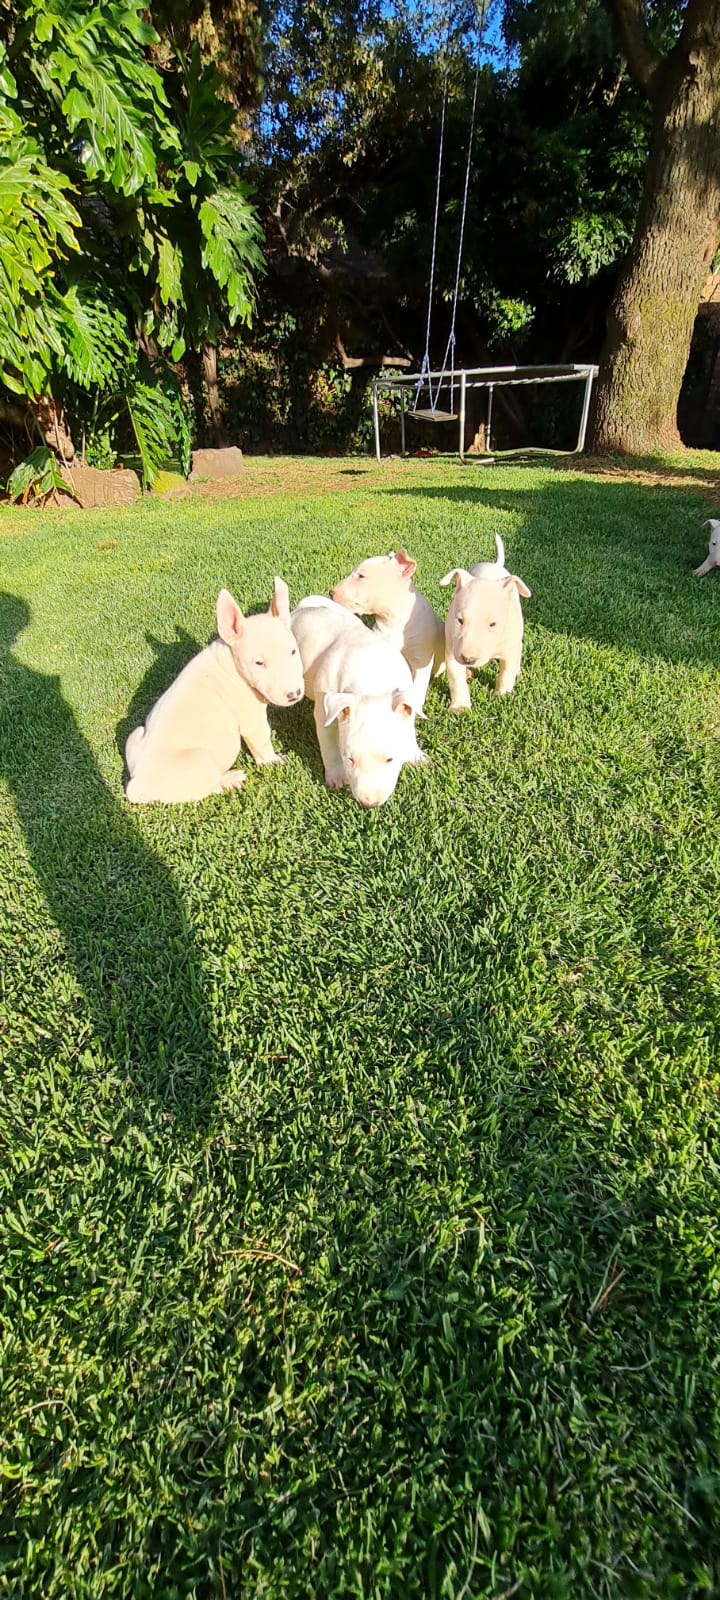 Bull Terrier Puppies in Other (12/10/2020)